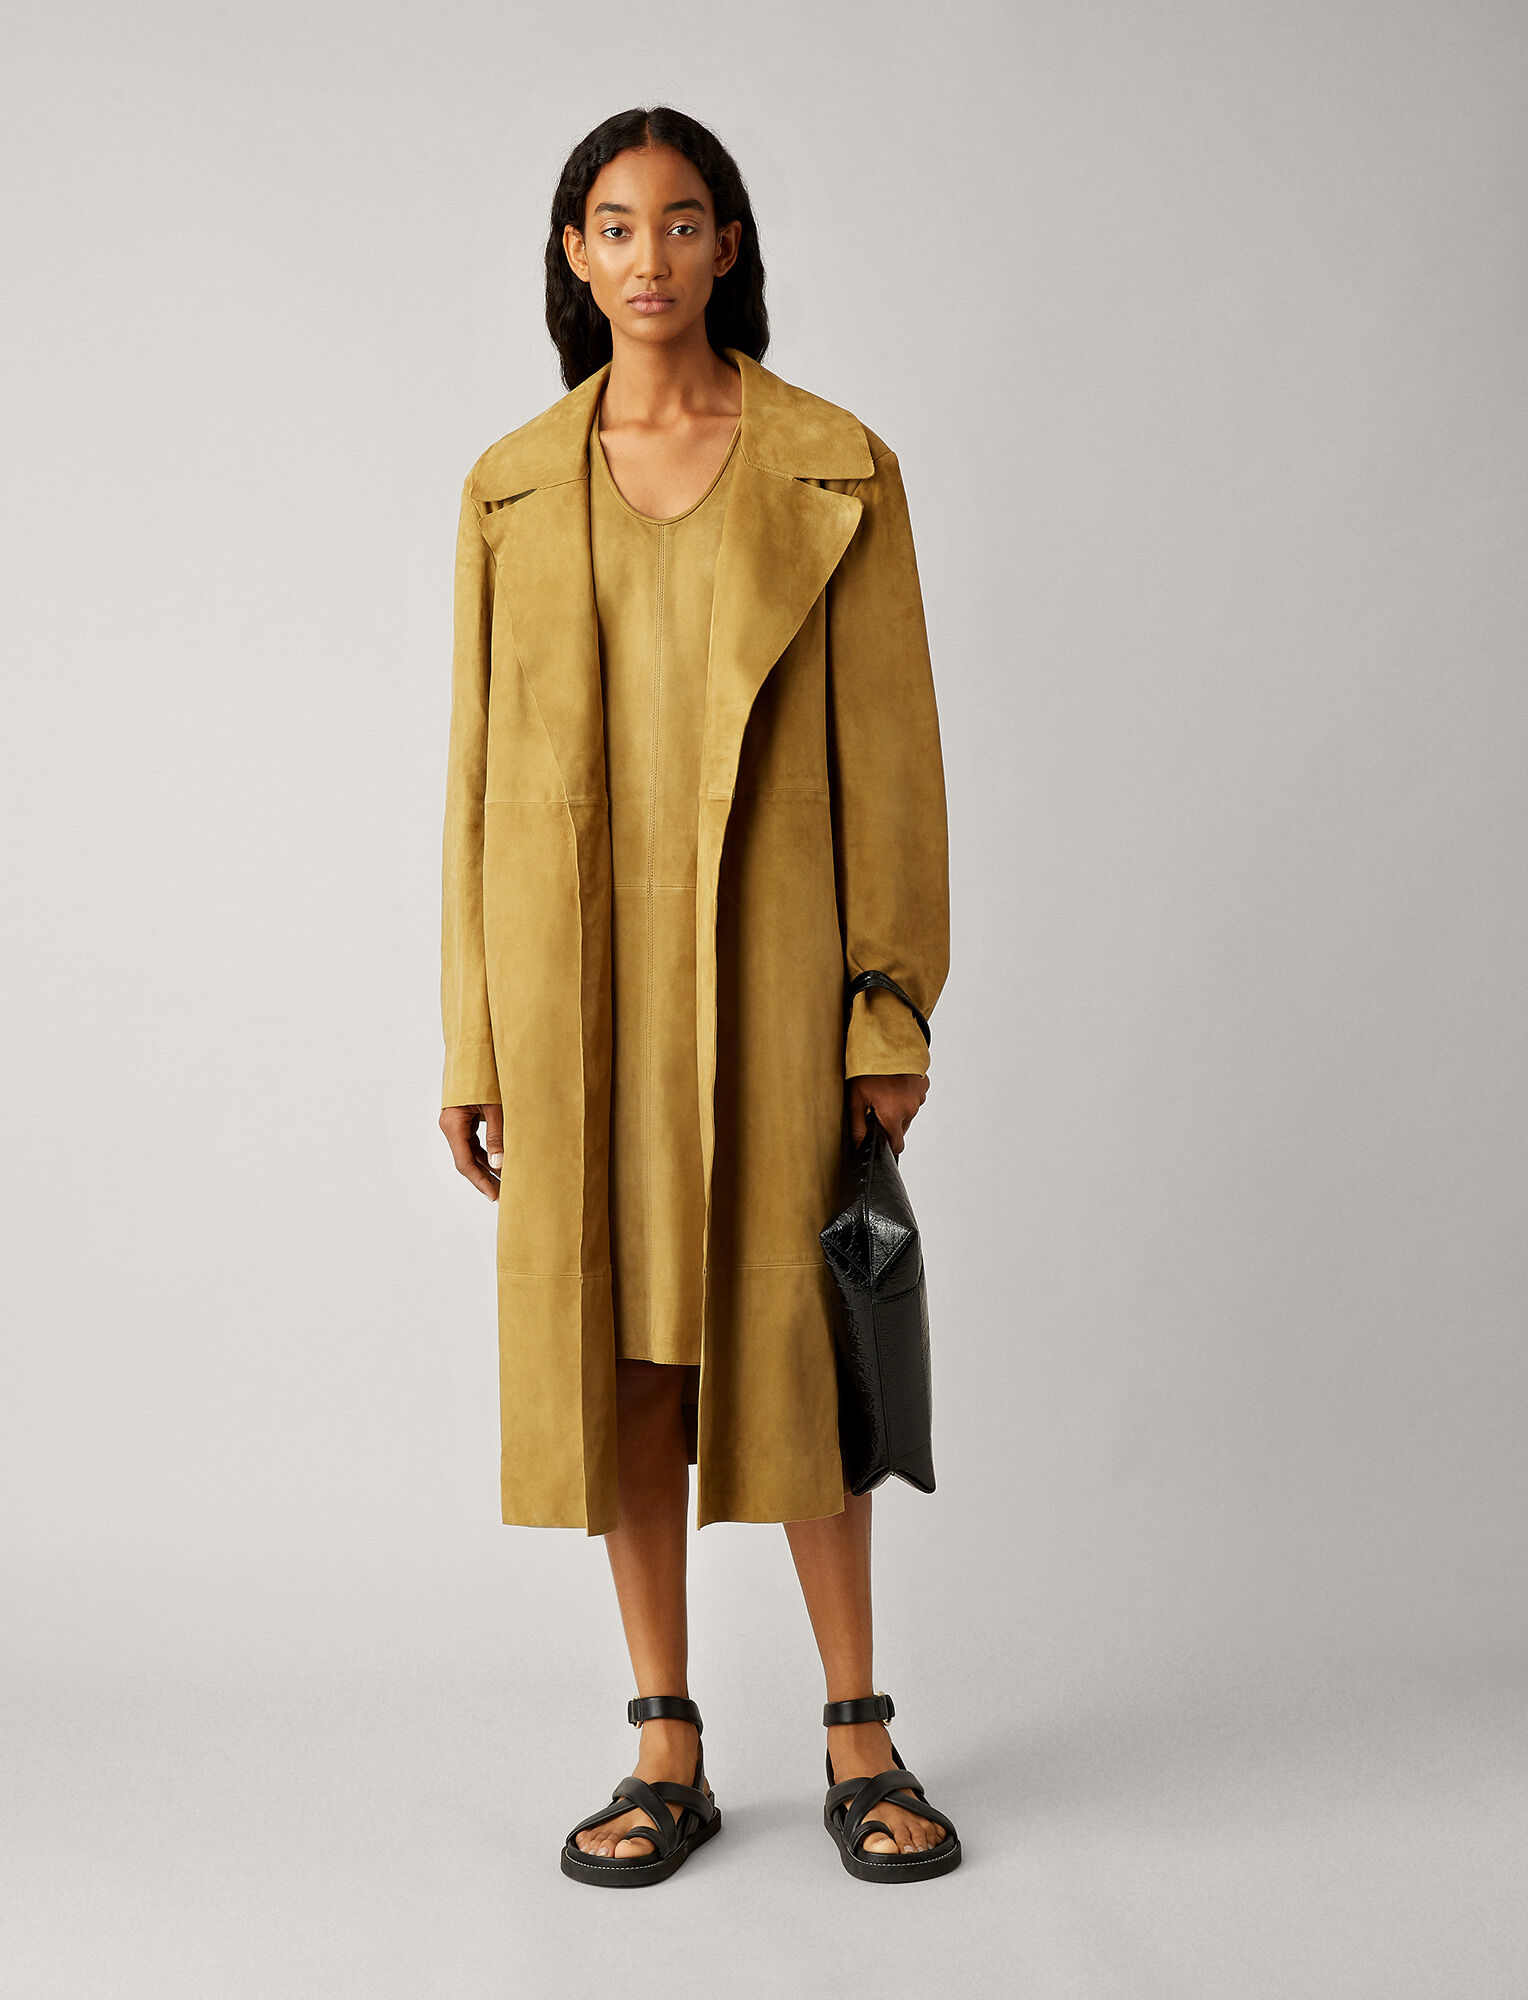 Joseph, June Suede Coat, in KHAKI